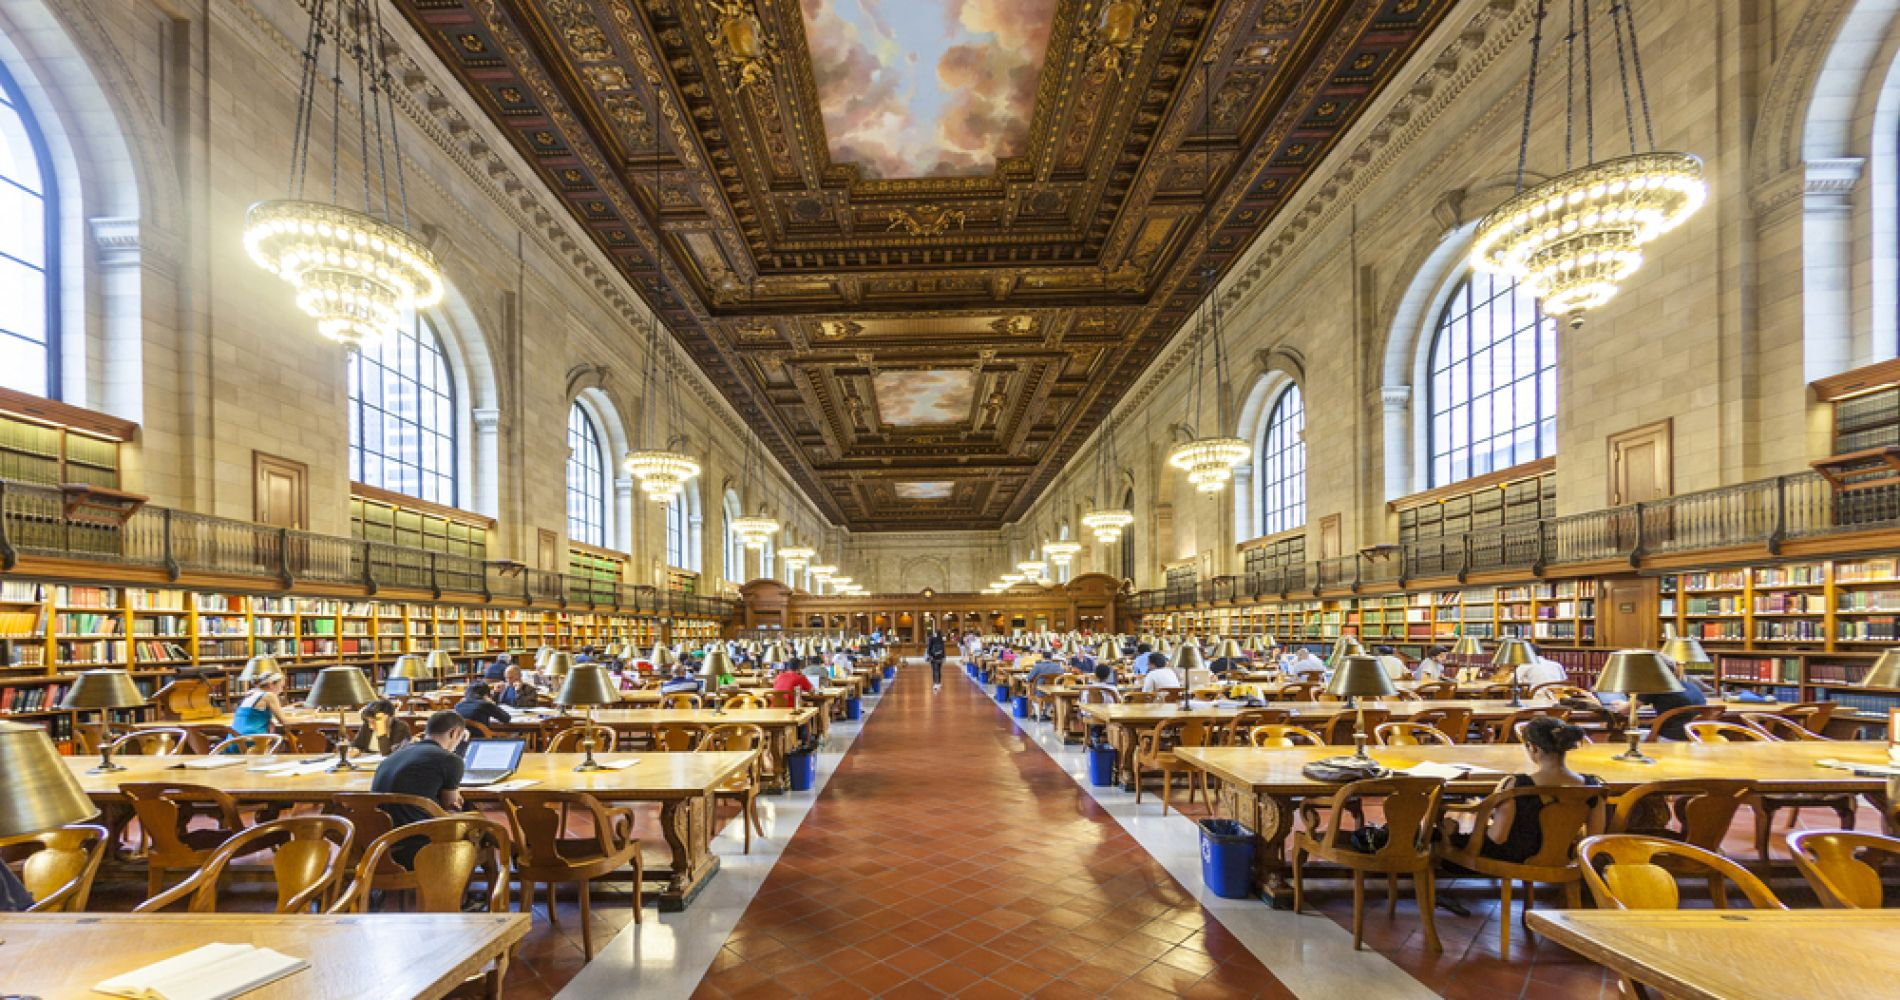 Take a Tour of the New York Public Library